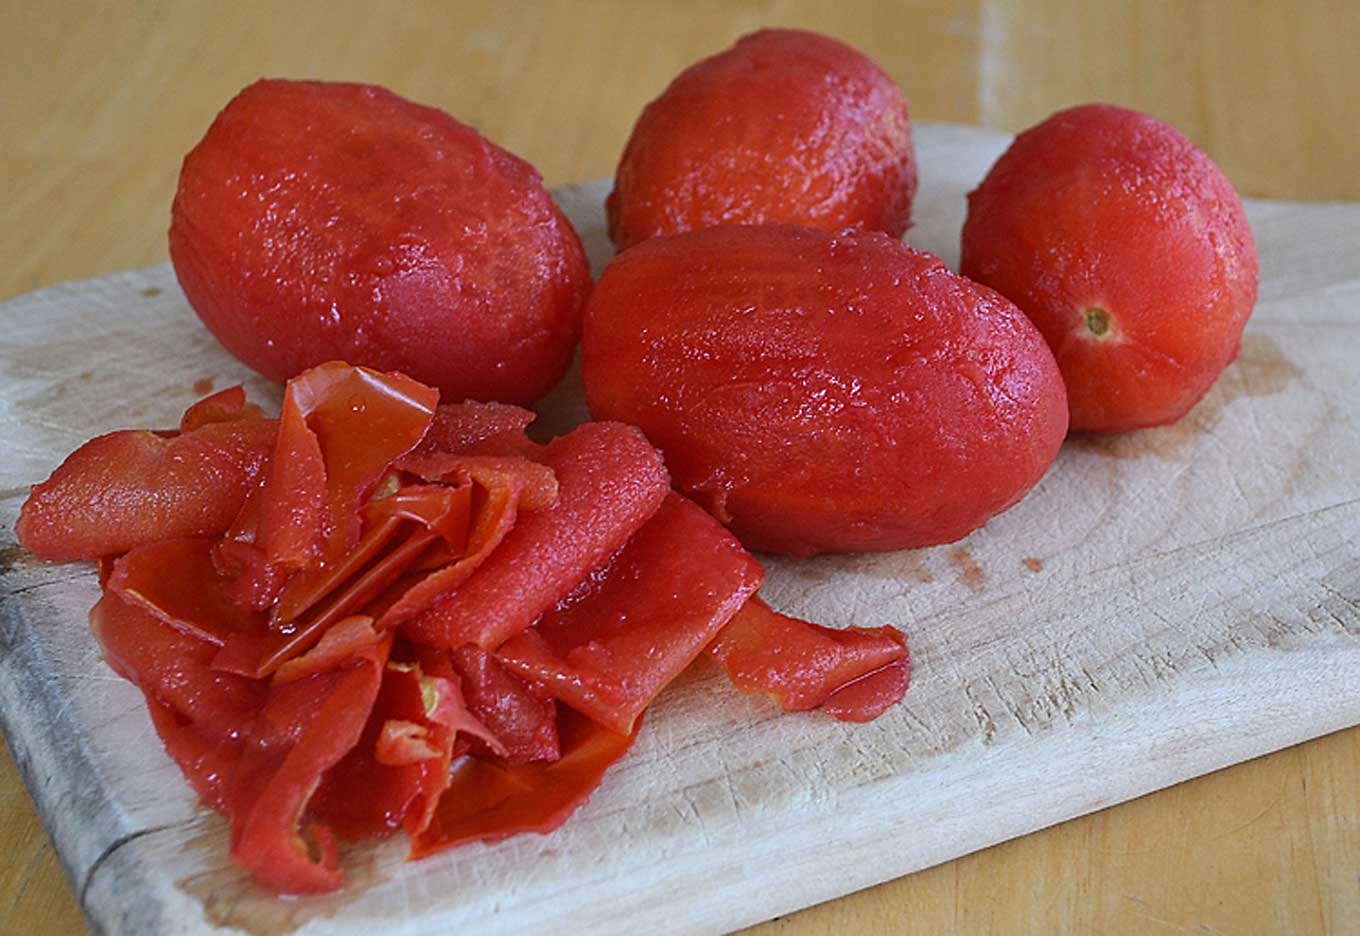 remove skin from tomatoes